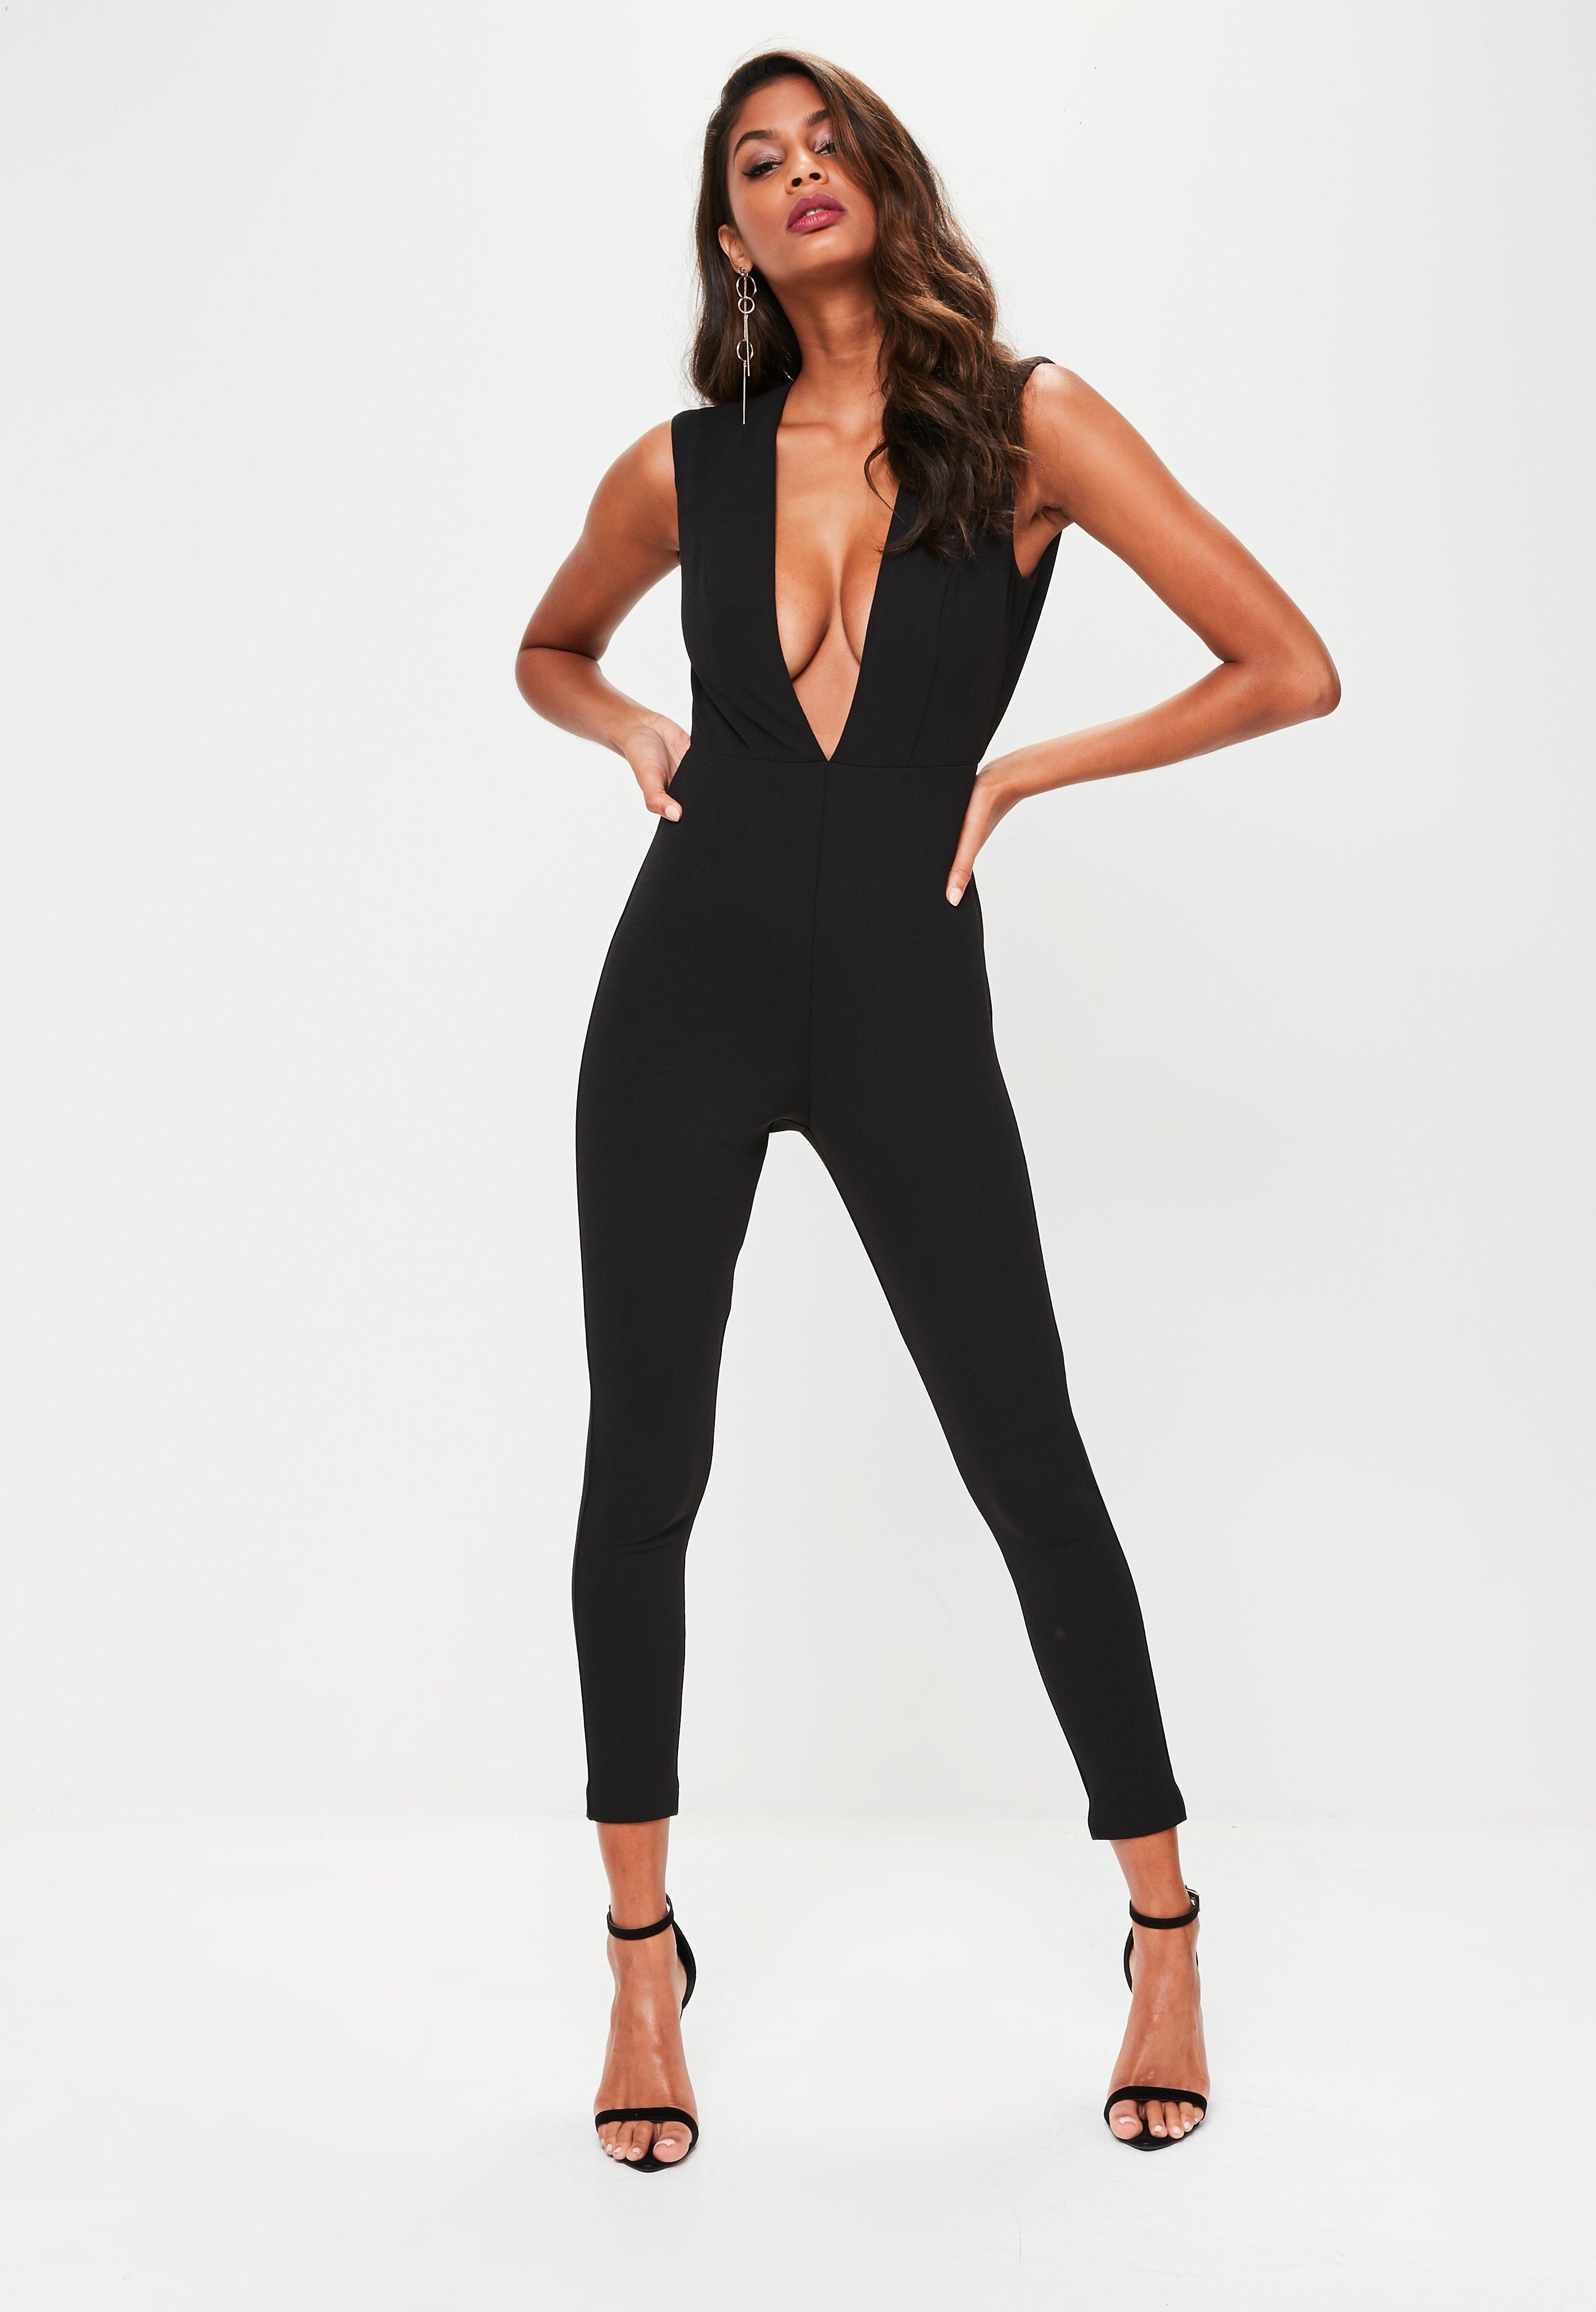 b88c15afbea Lyst - Missguided Black Cut Out Backless Jumpsuit in Black